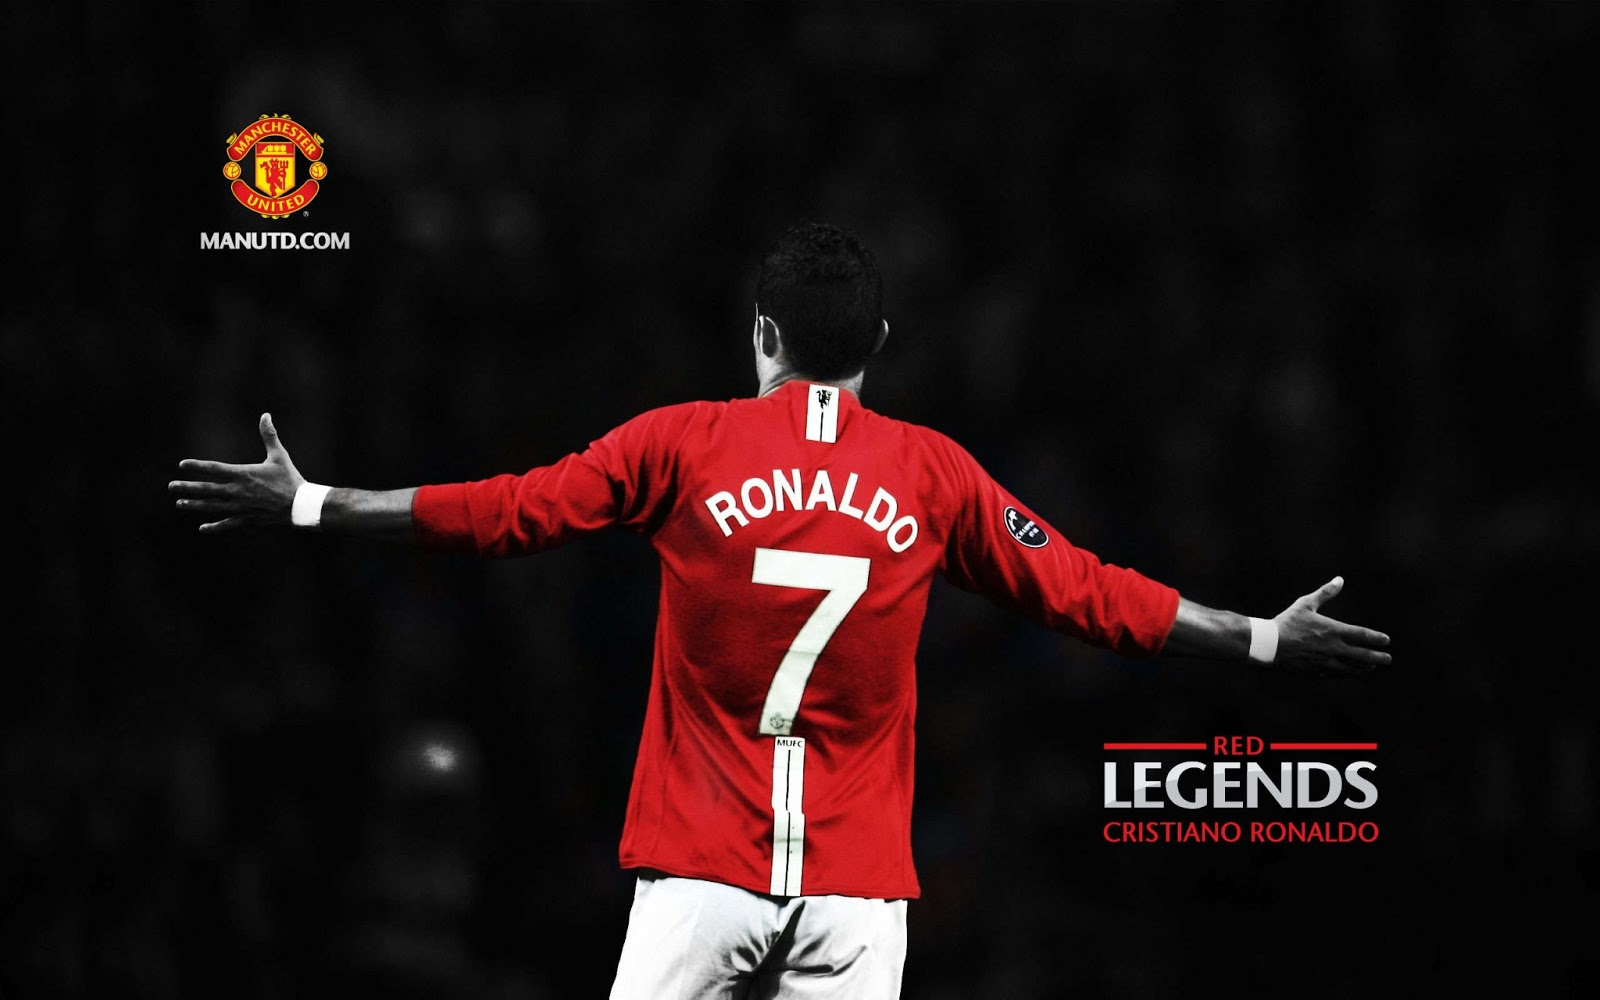 Ronaldo Manchester United Wallpaper HD Download Wallpaper 1600x1000